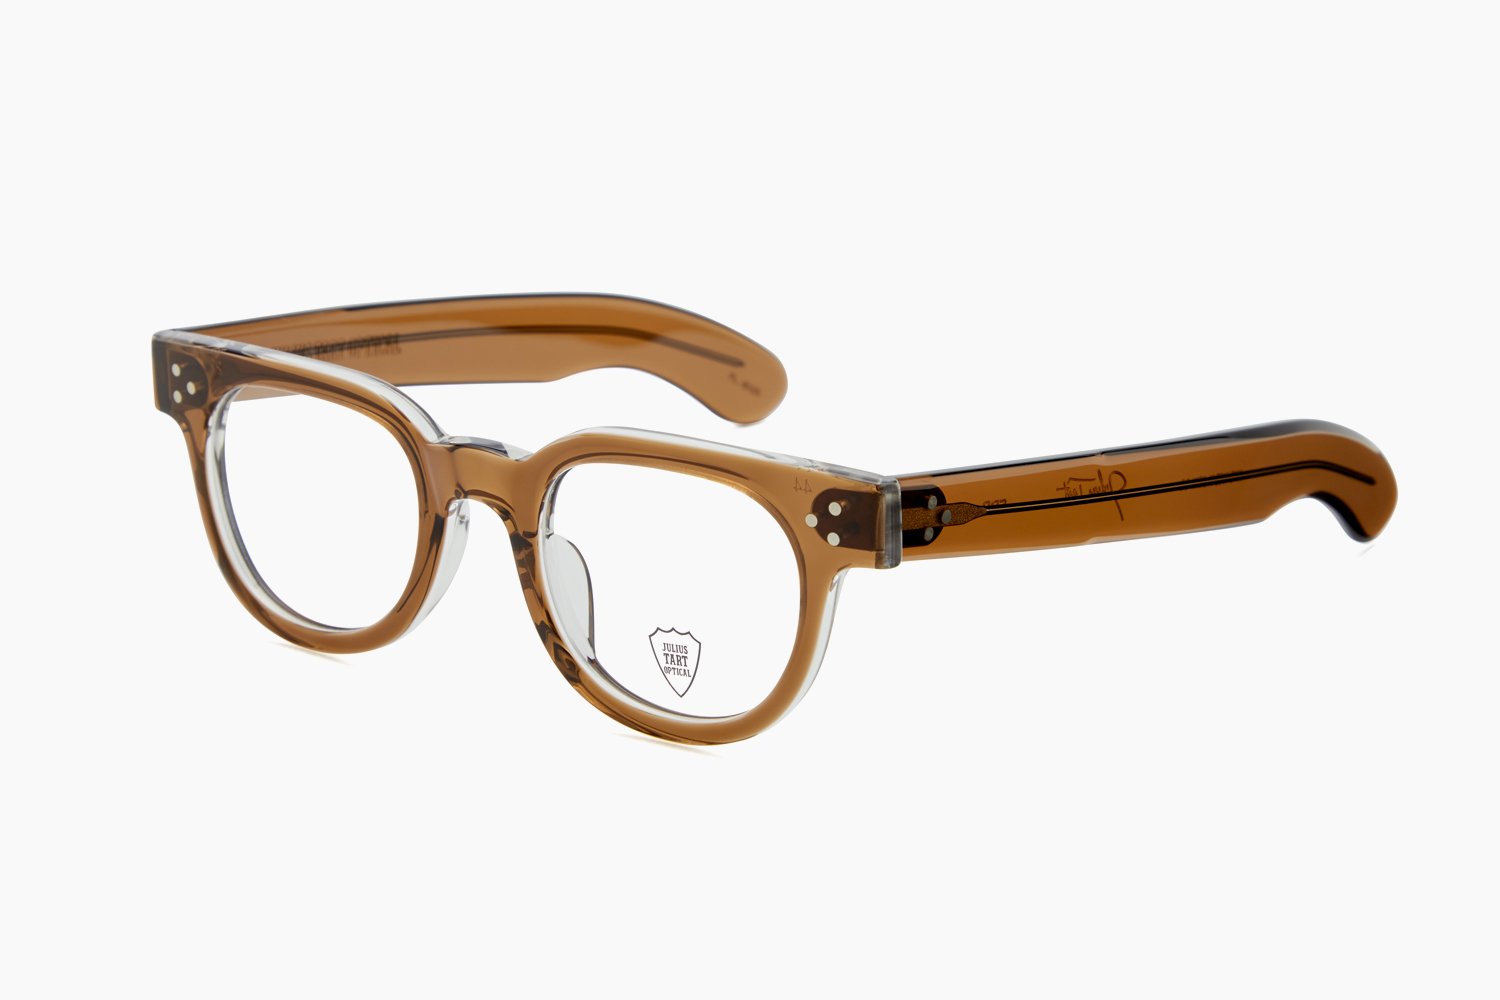 FDR 44 - Brown Crystal 2|JULIUS TART OPTICAL